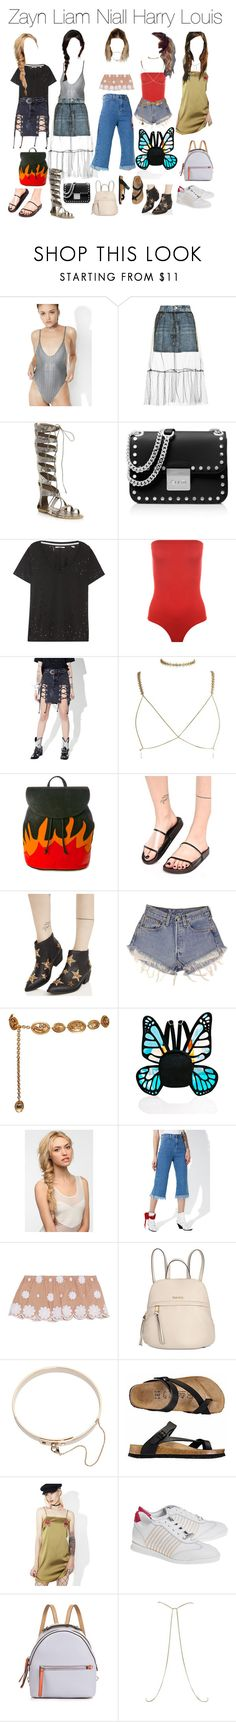 """""""Coachella day 3"""" by princess99beatriz ❤ liked on Polyvore featuring Jaded, Topshop, Ivy Kirzhner, MICHAEL Michael Kors, J Brand, WearAll, American Vintage, N.Y.L.A., Chinese Laundry and Levi's"""